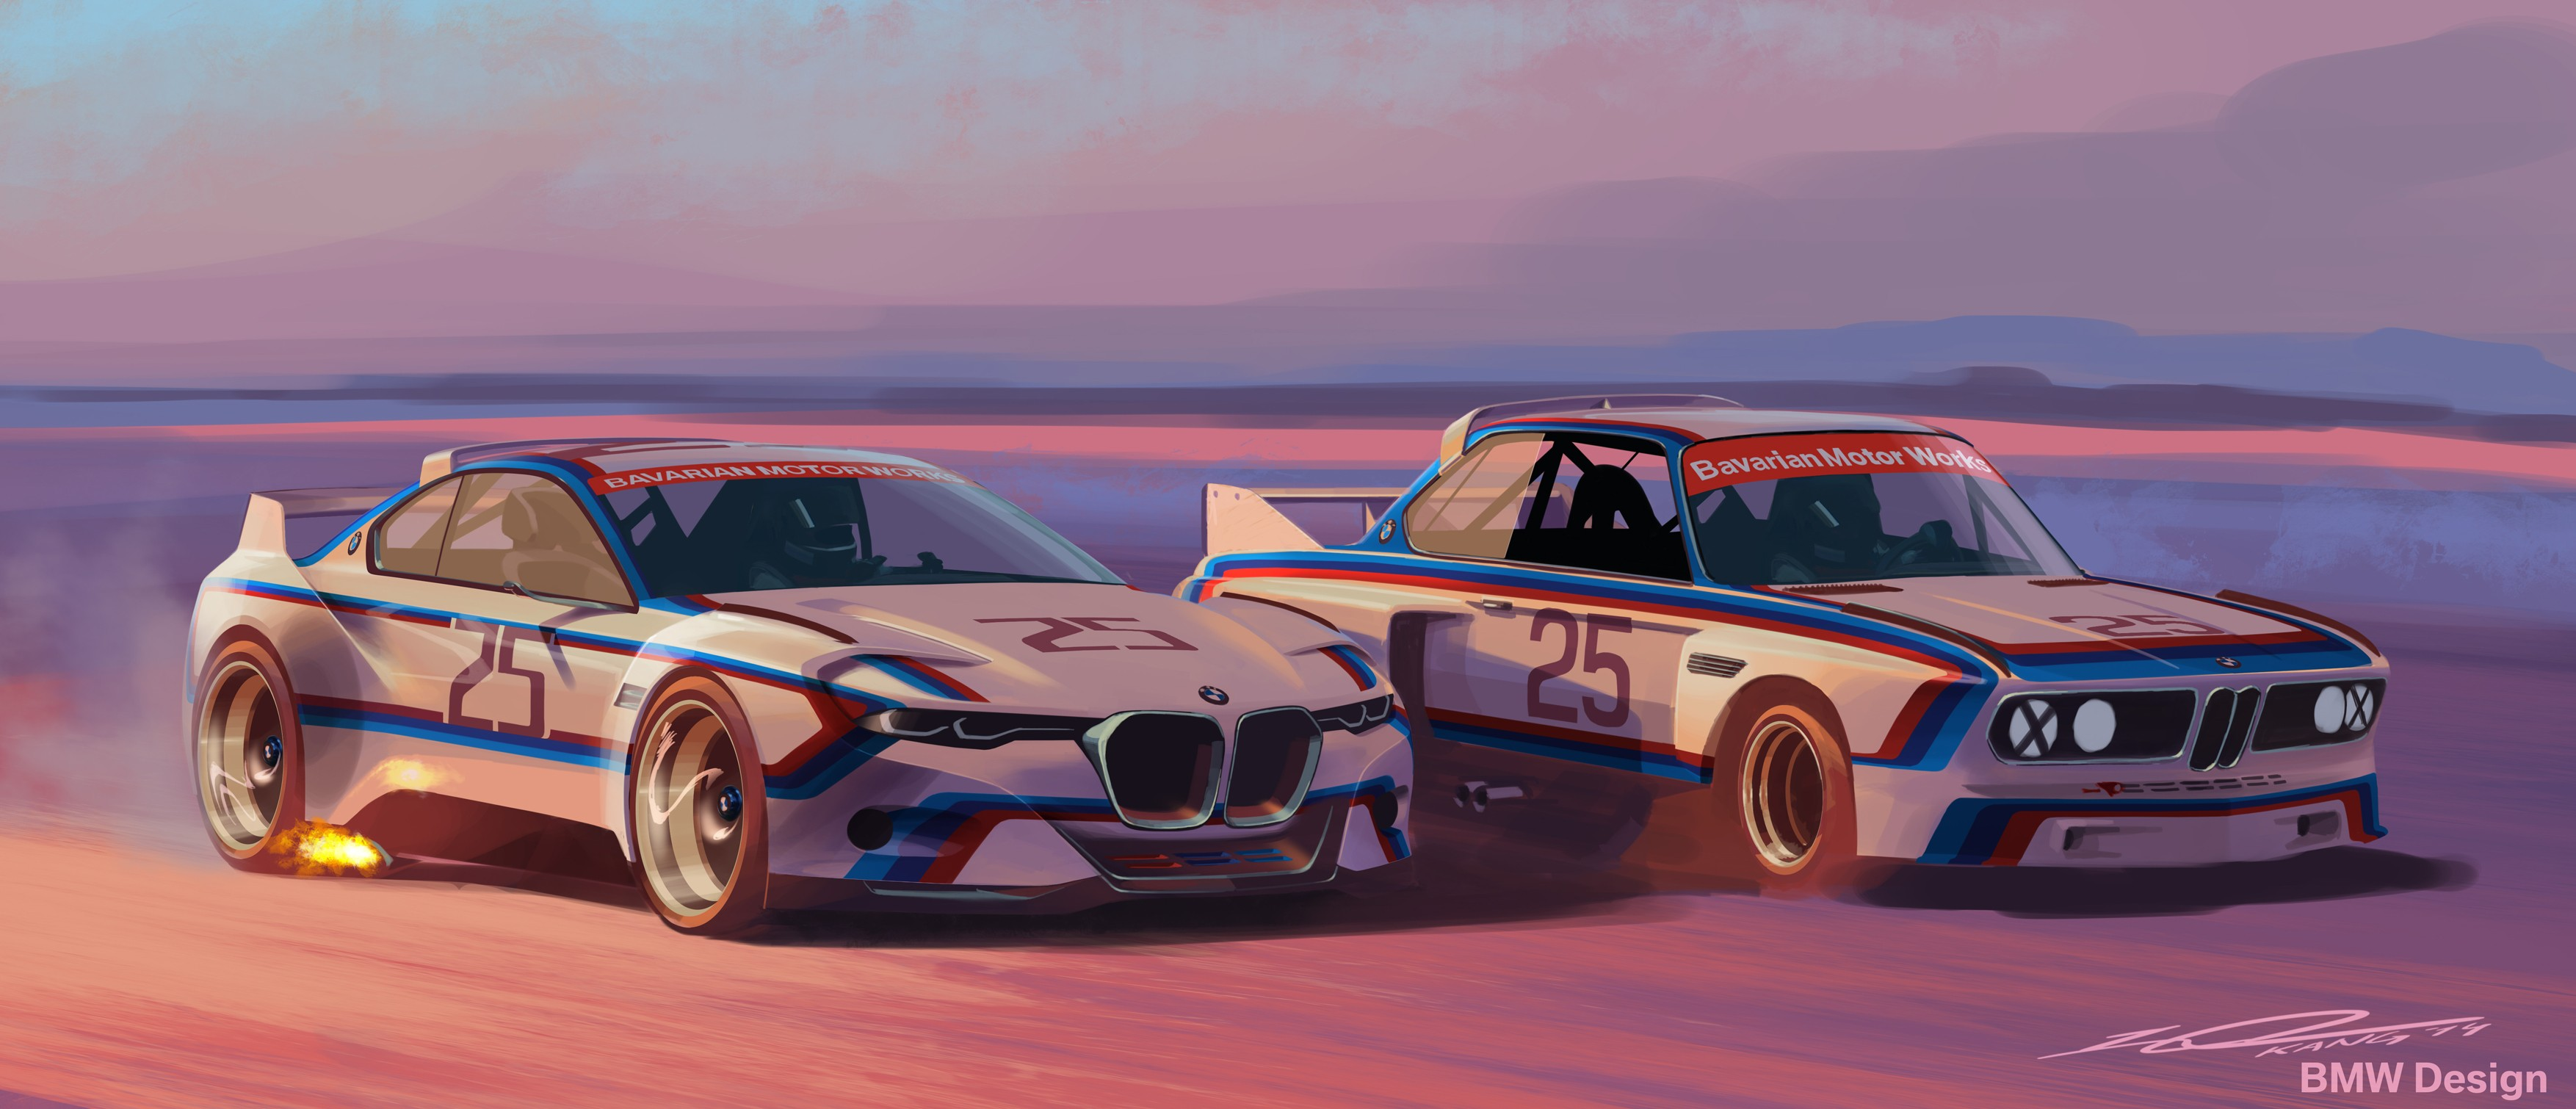 Bmw 3 0 Csl >> Second Concept Shown by BMW at Pebble Beach Is the 3.0 CSL Hommage R - autoevolution